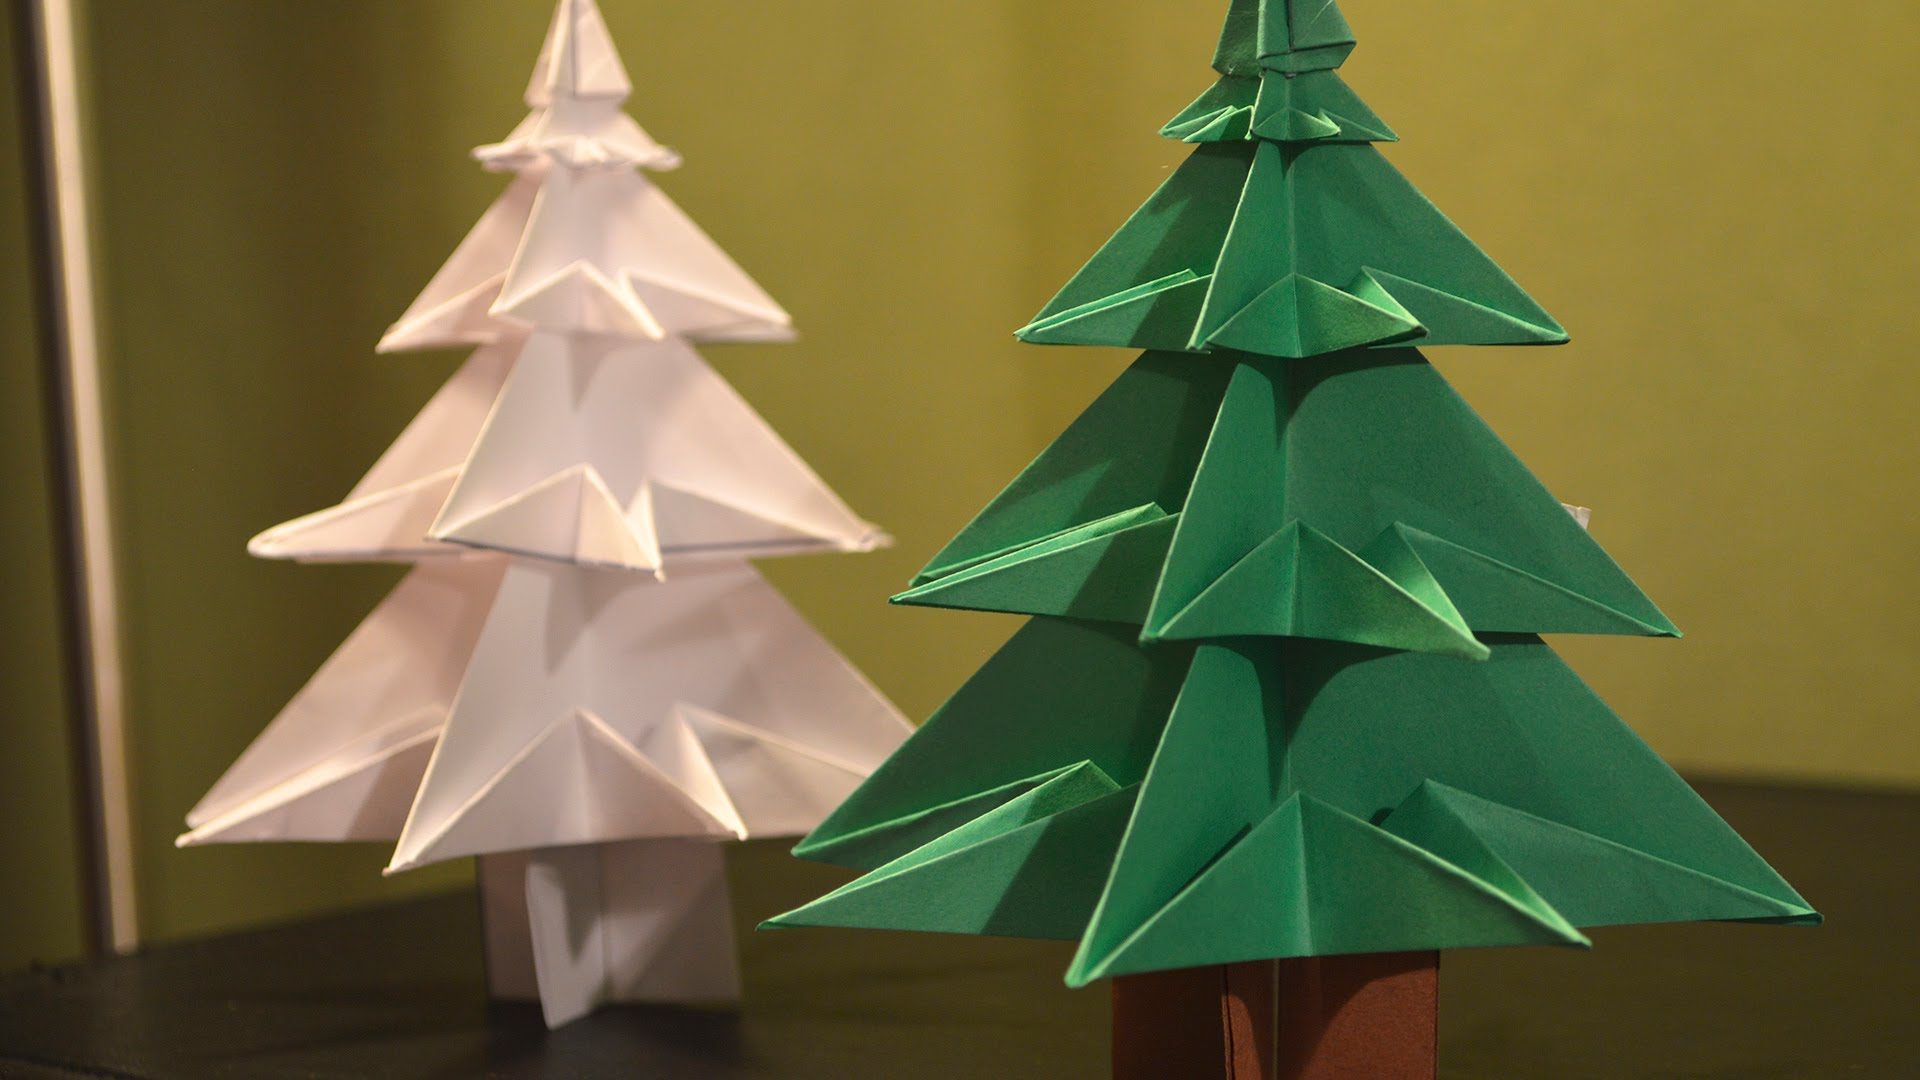 20 Diy Christmas Decorations Ideas We Bet You Haven T Thought Of